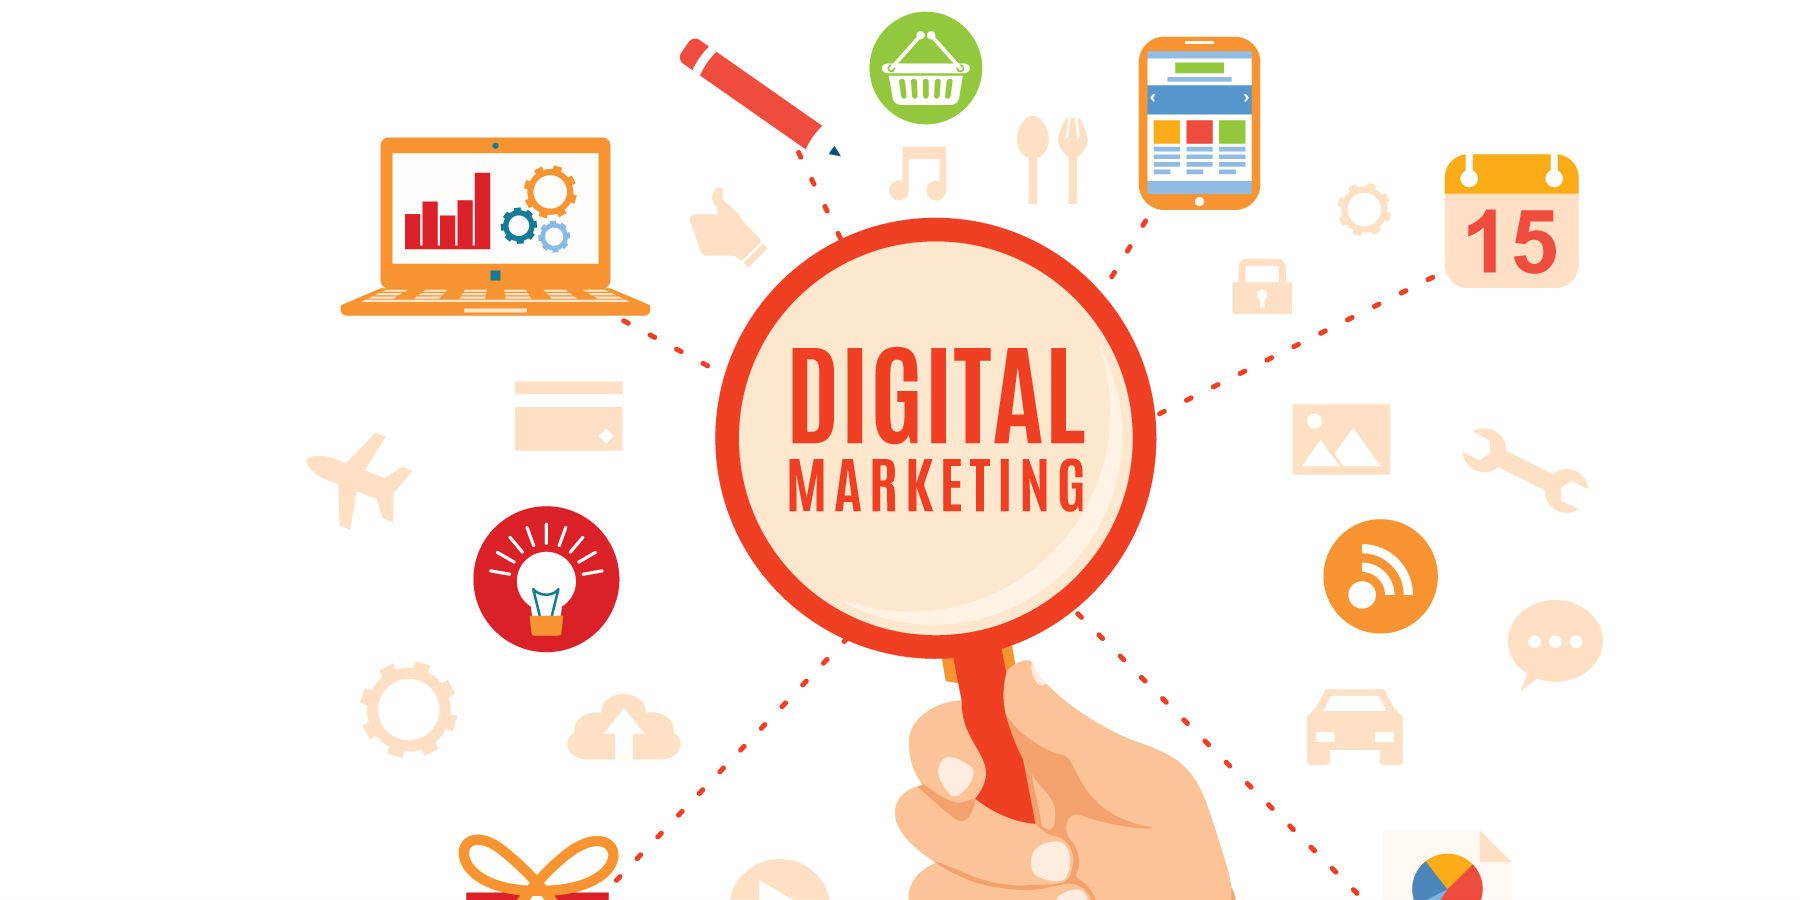 Why You Should Only Use One Agency for Your Digital Marketing